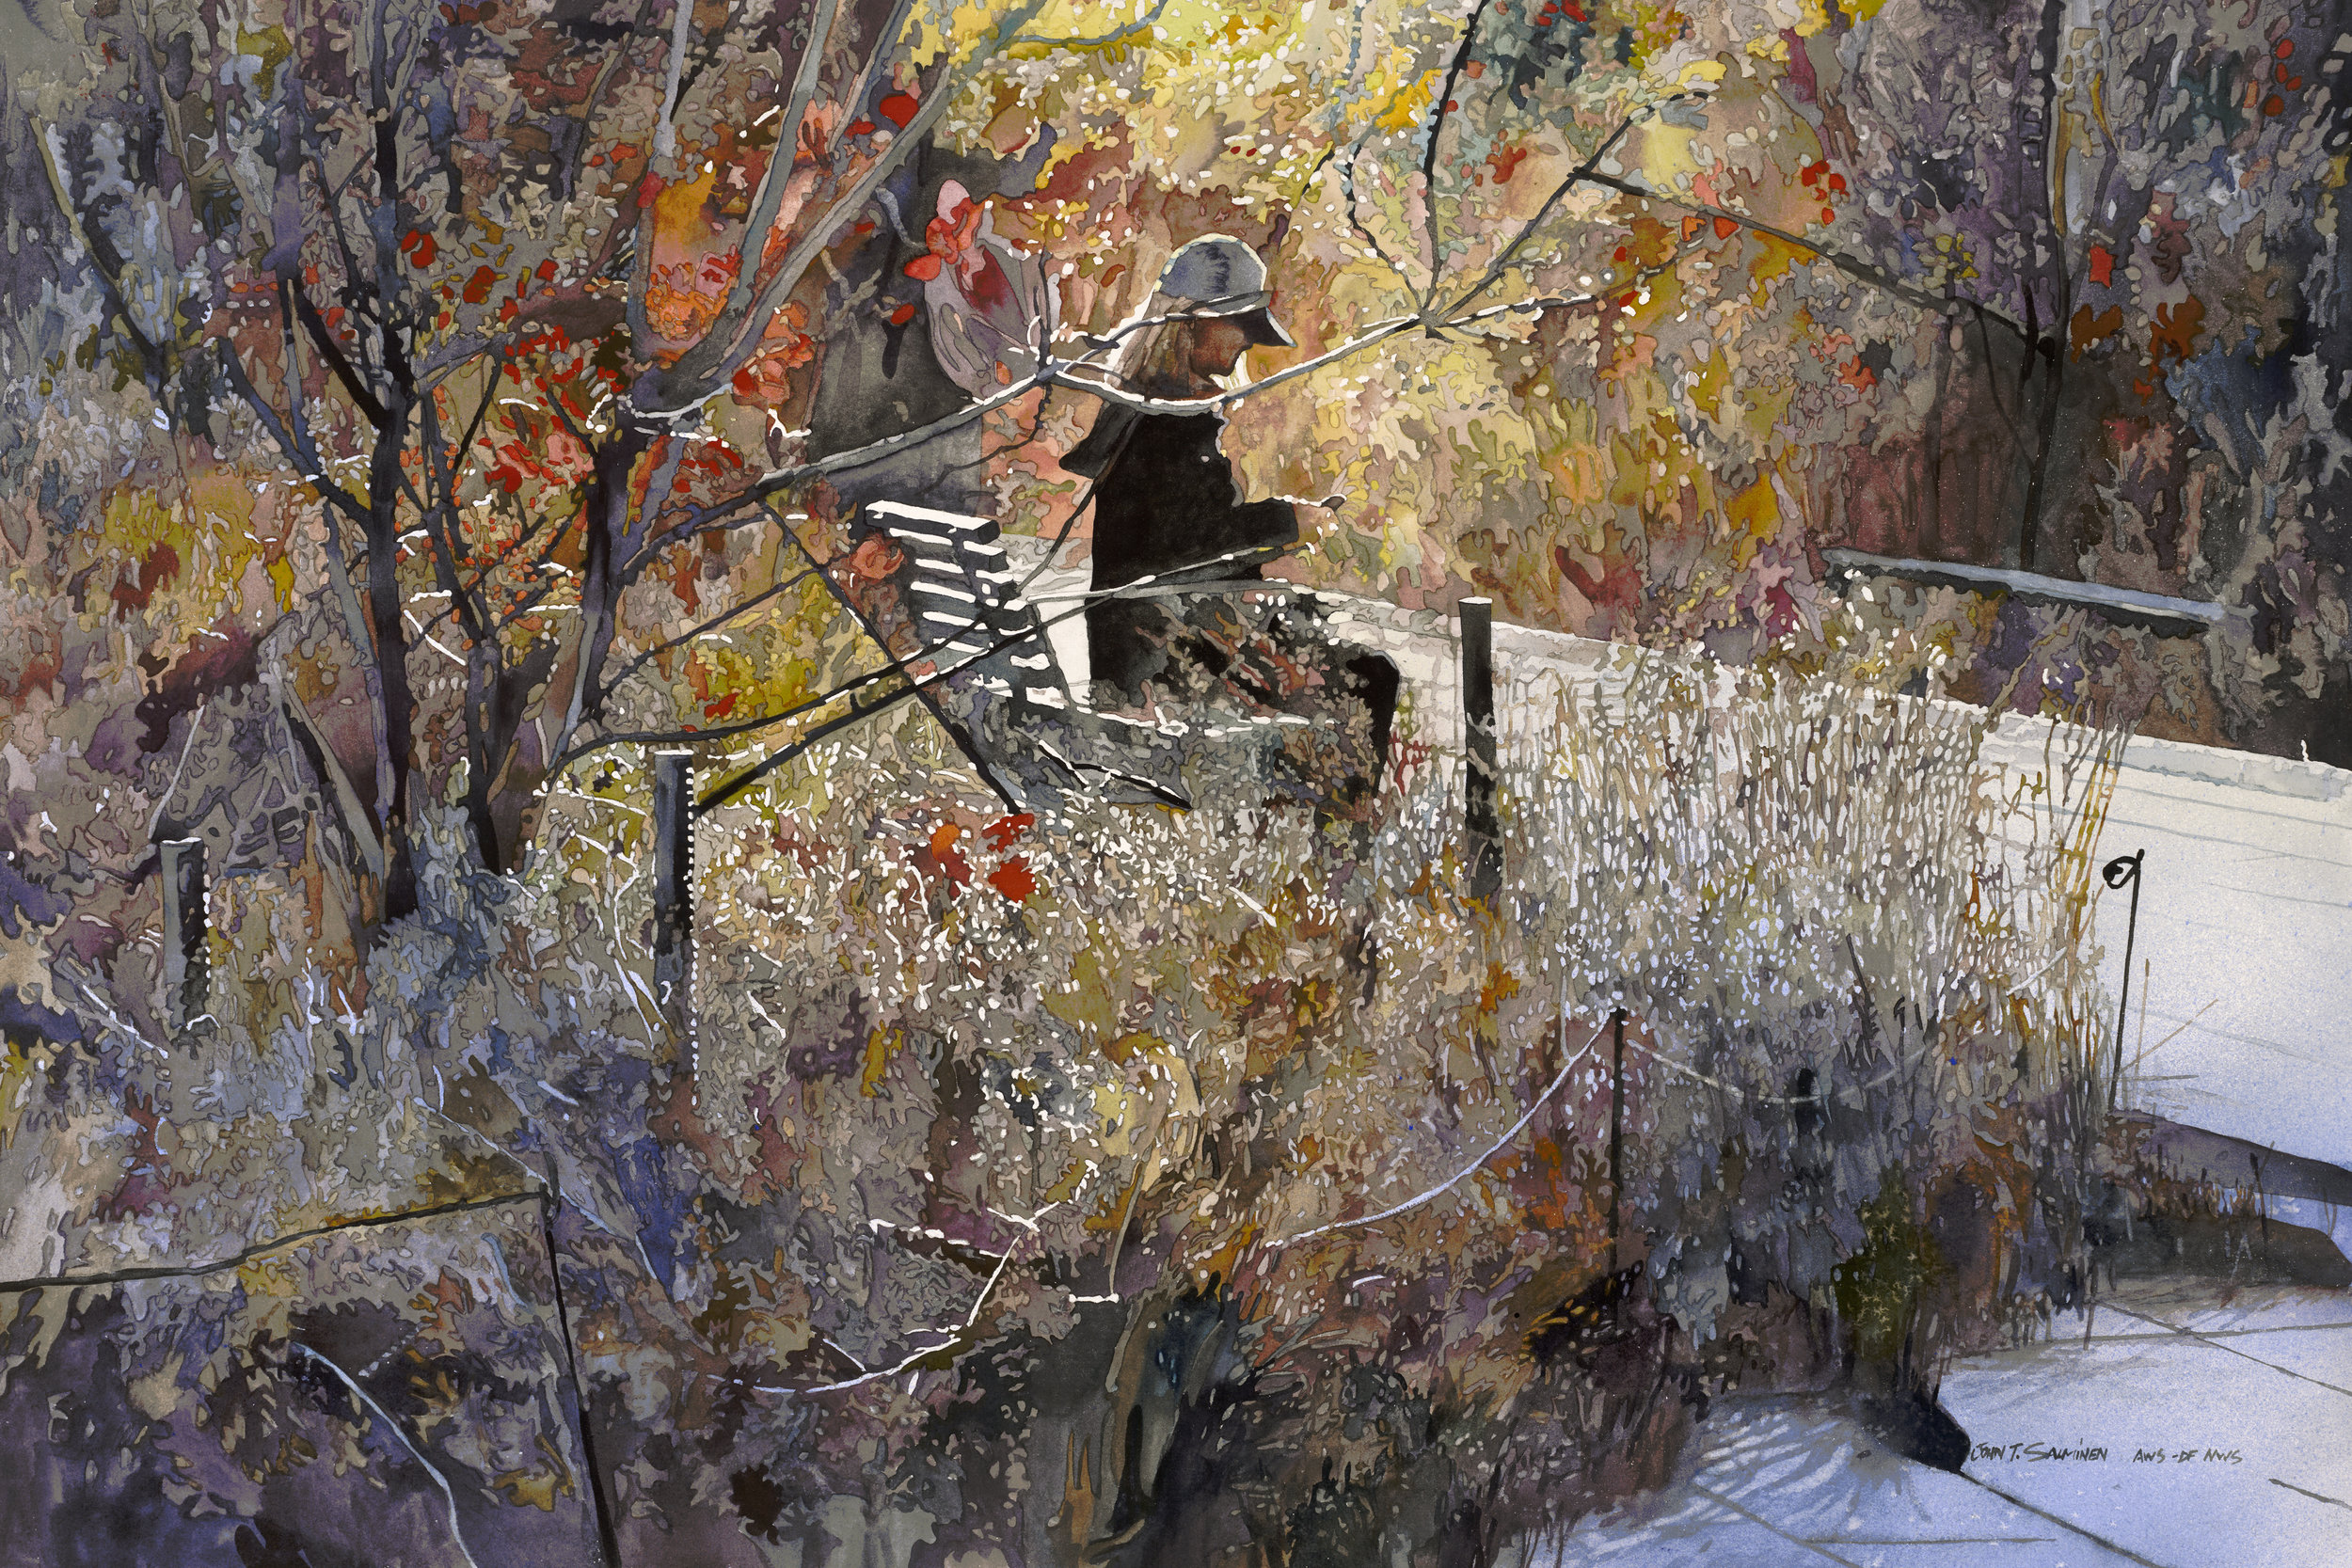 Autumn High Line  by John Salminen is currently on display in our Watercolor West exhibit.